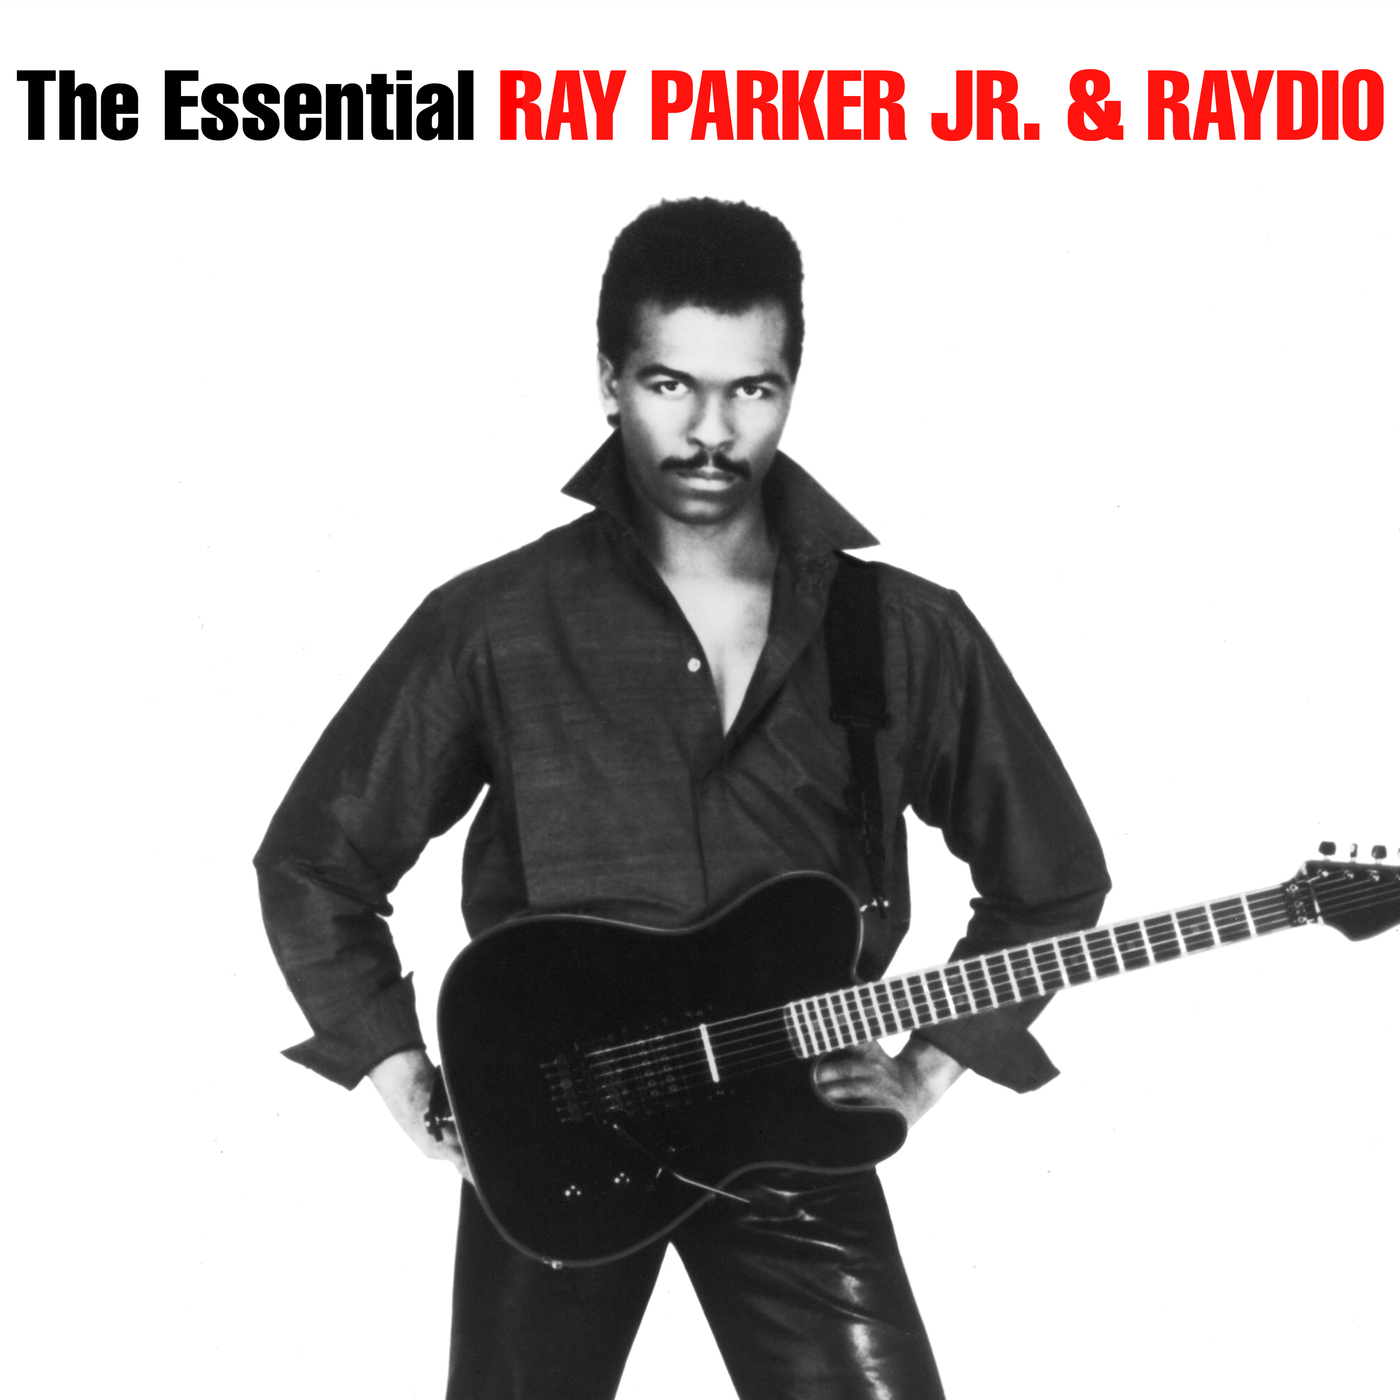 The Essential Ray Parker Jr & Raydio - Ray Parker Jr.